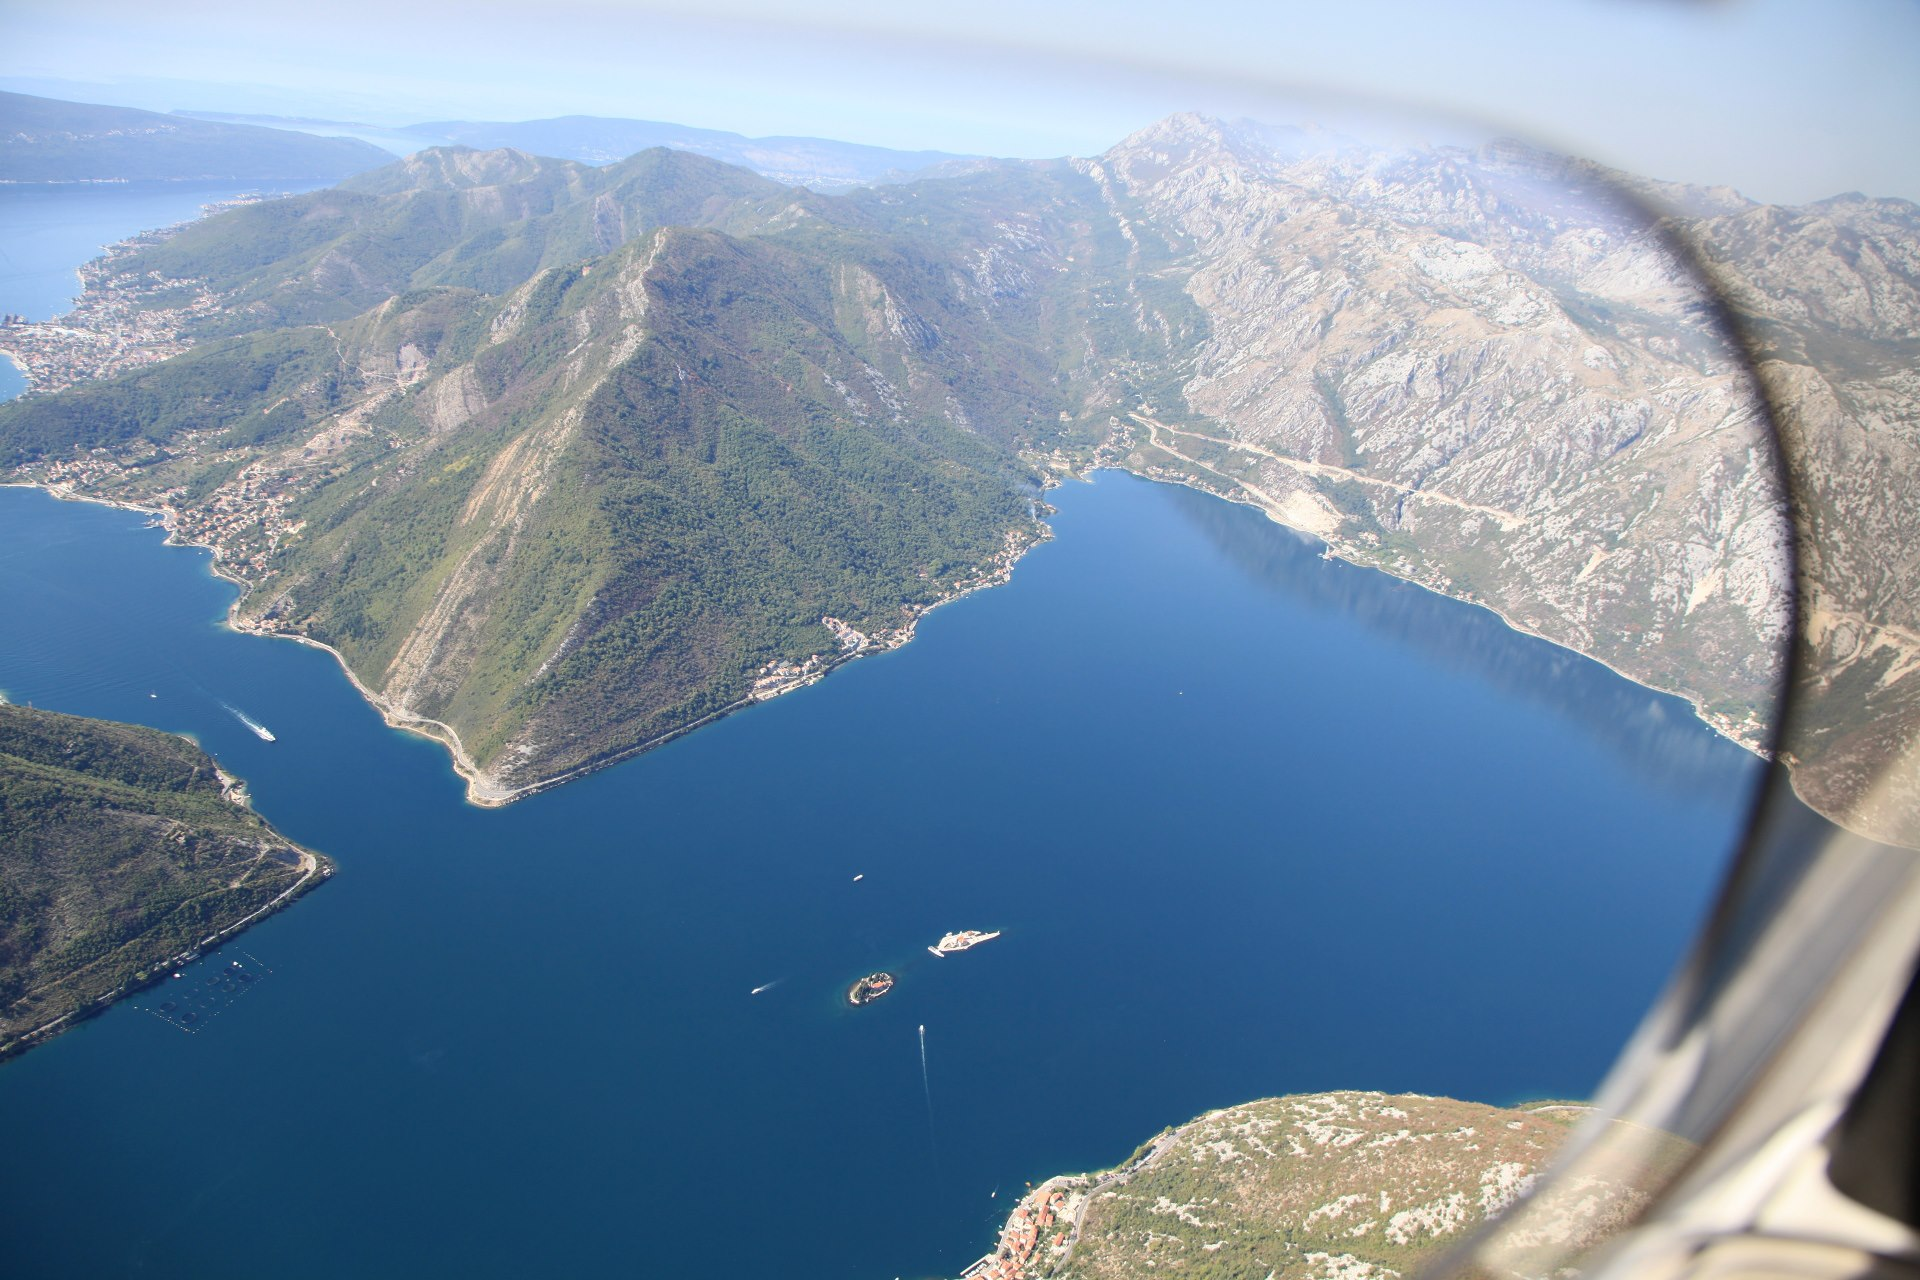 north end of the Bay of Kotor